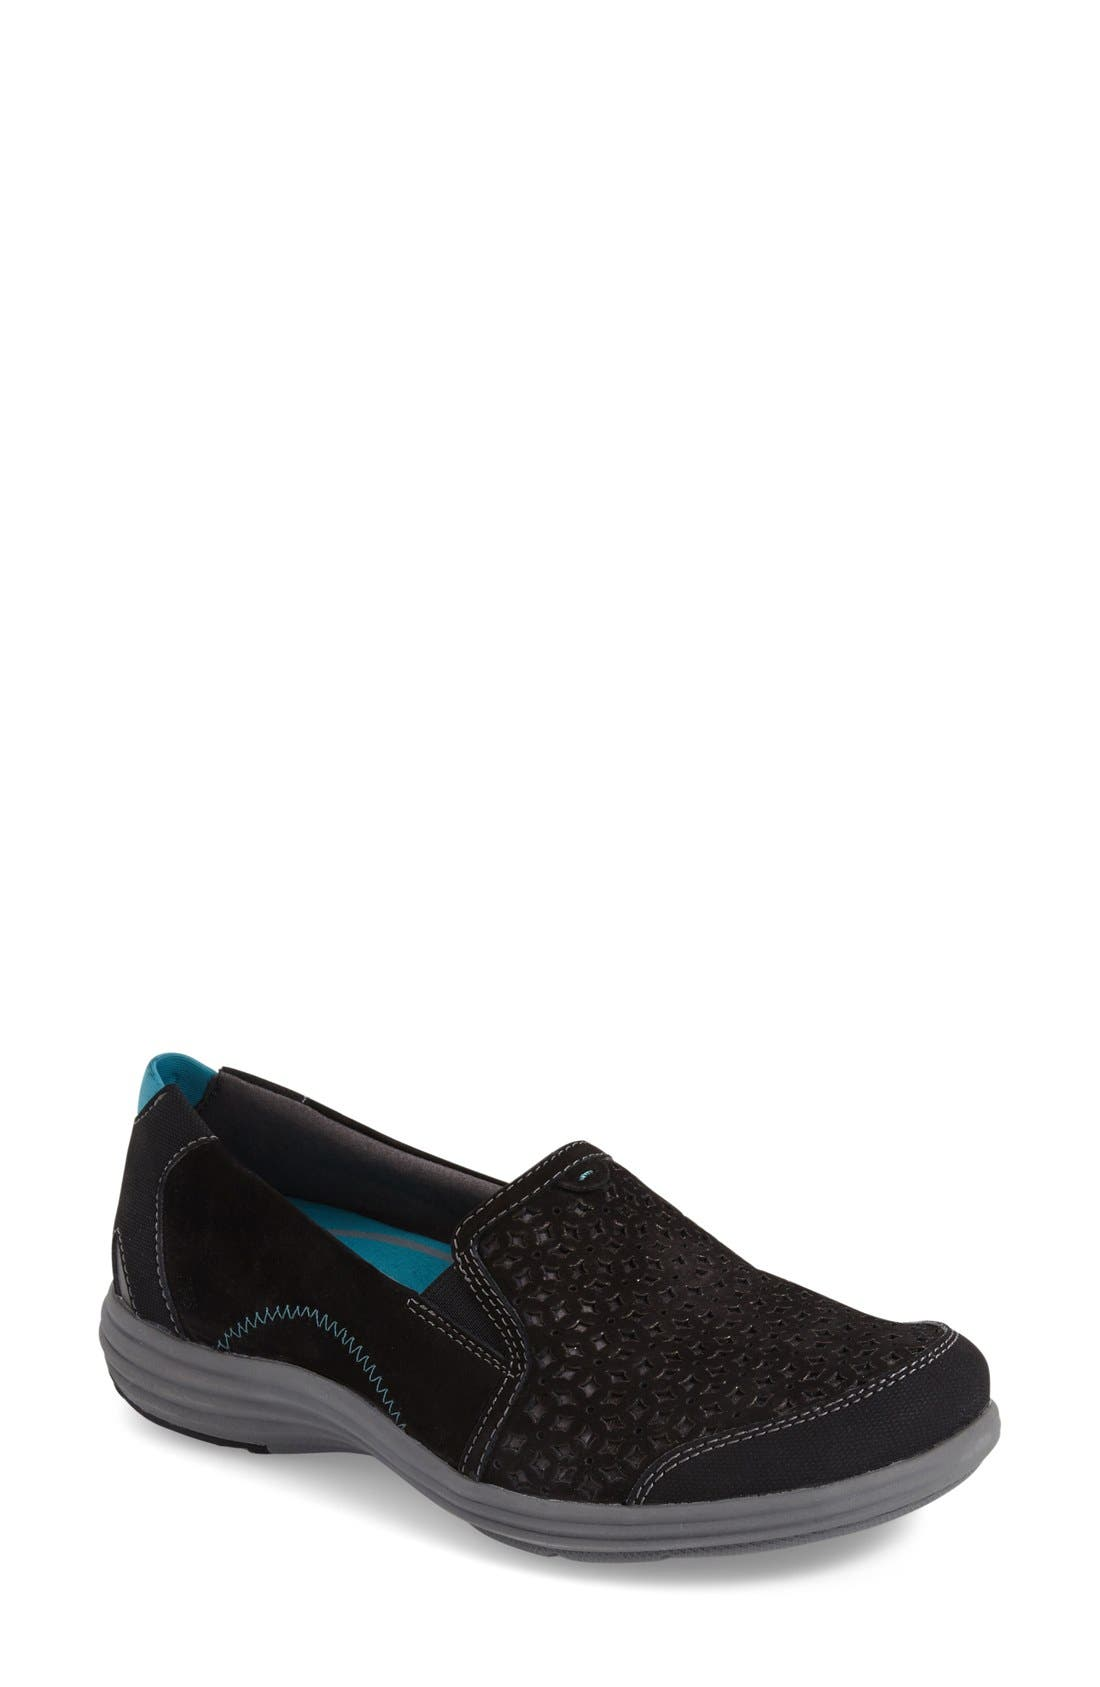 'Bonnie' Slip-On Sneaker,                         Main,                         color, 001